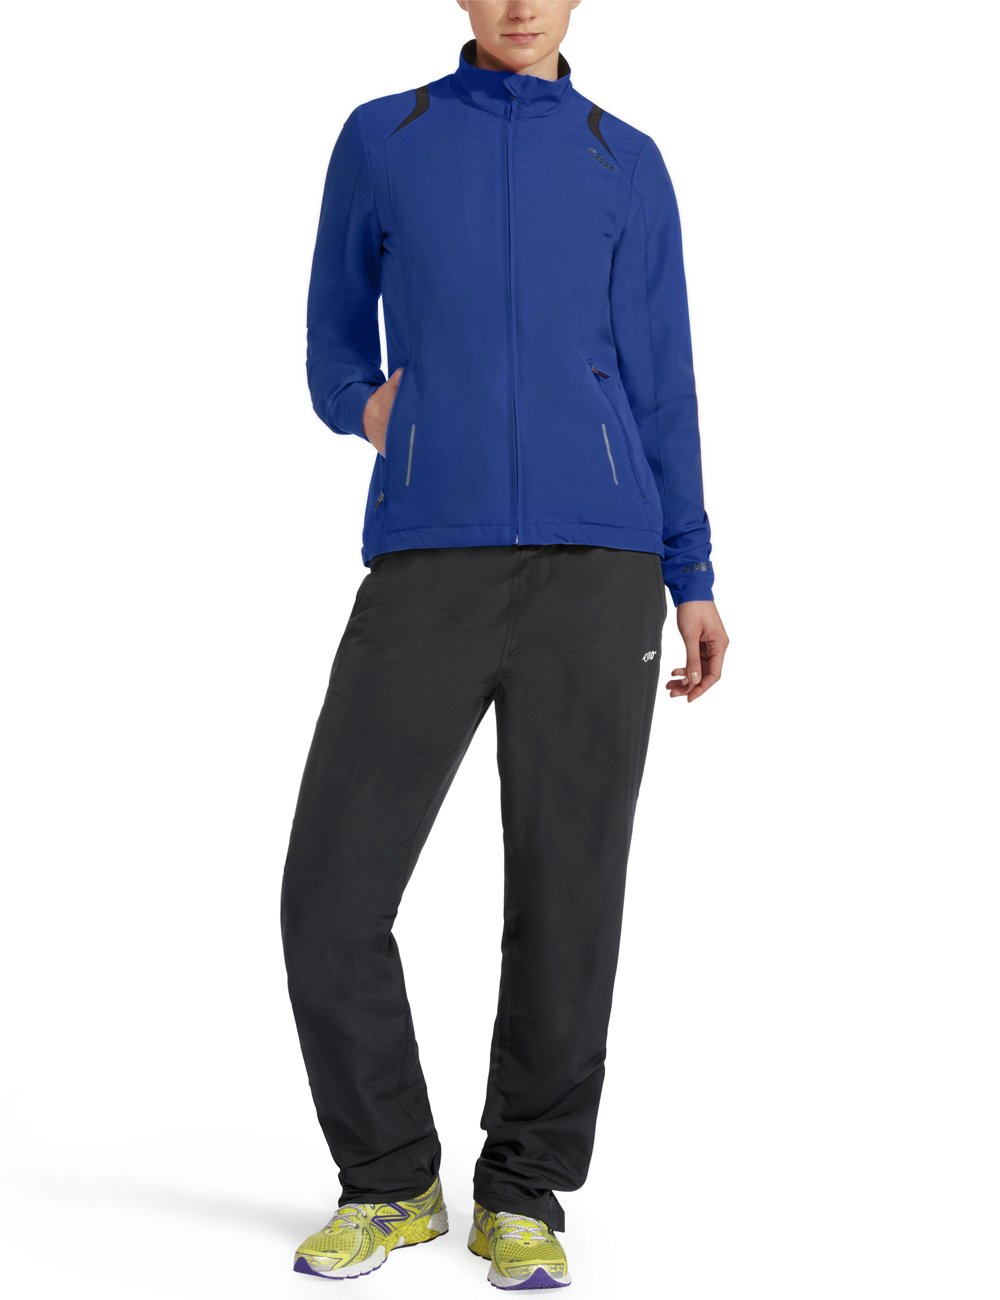 Rono Trainingsanzug Da-präsentationsanzug - Chándal de fitness para mujer, color (Surf The Web (391)), talla 3XL